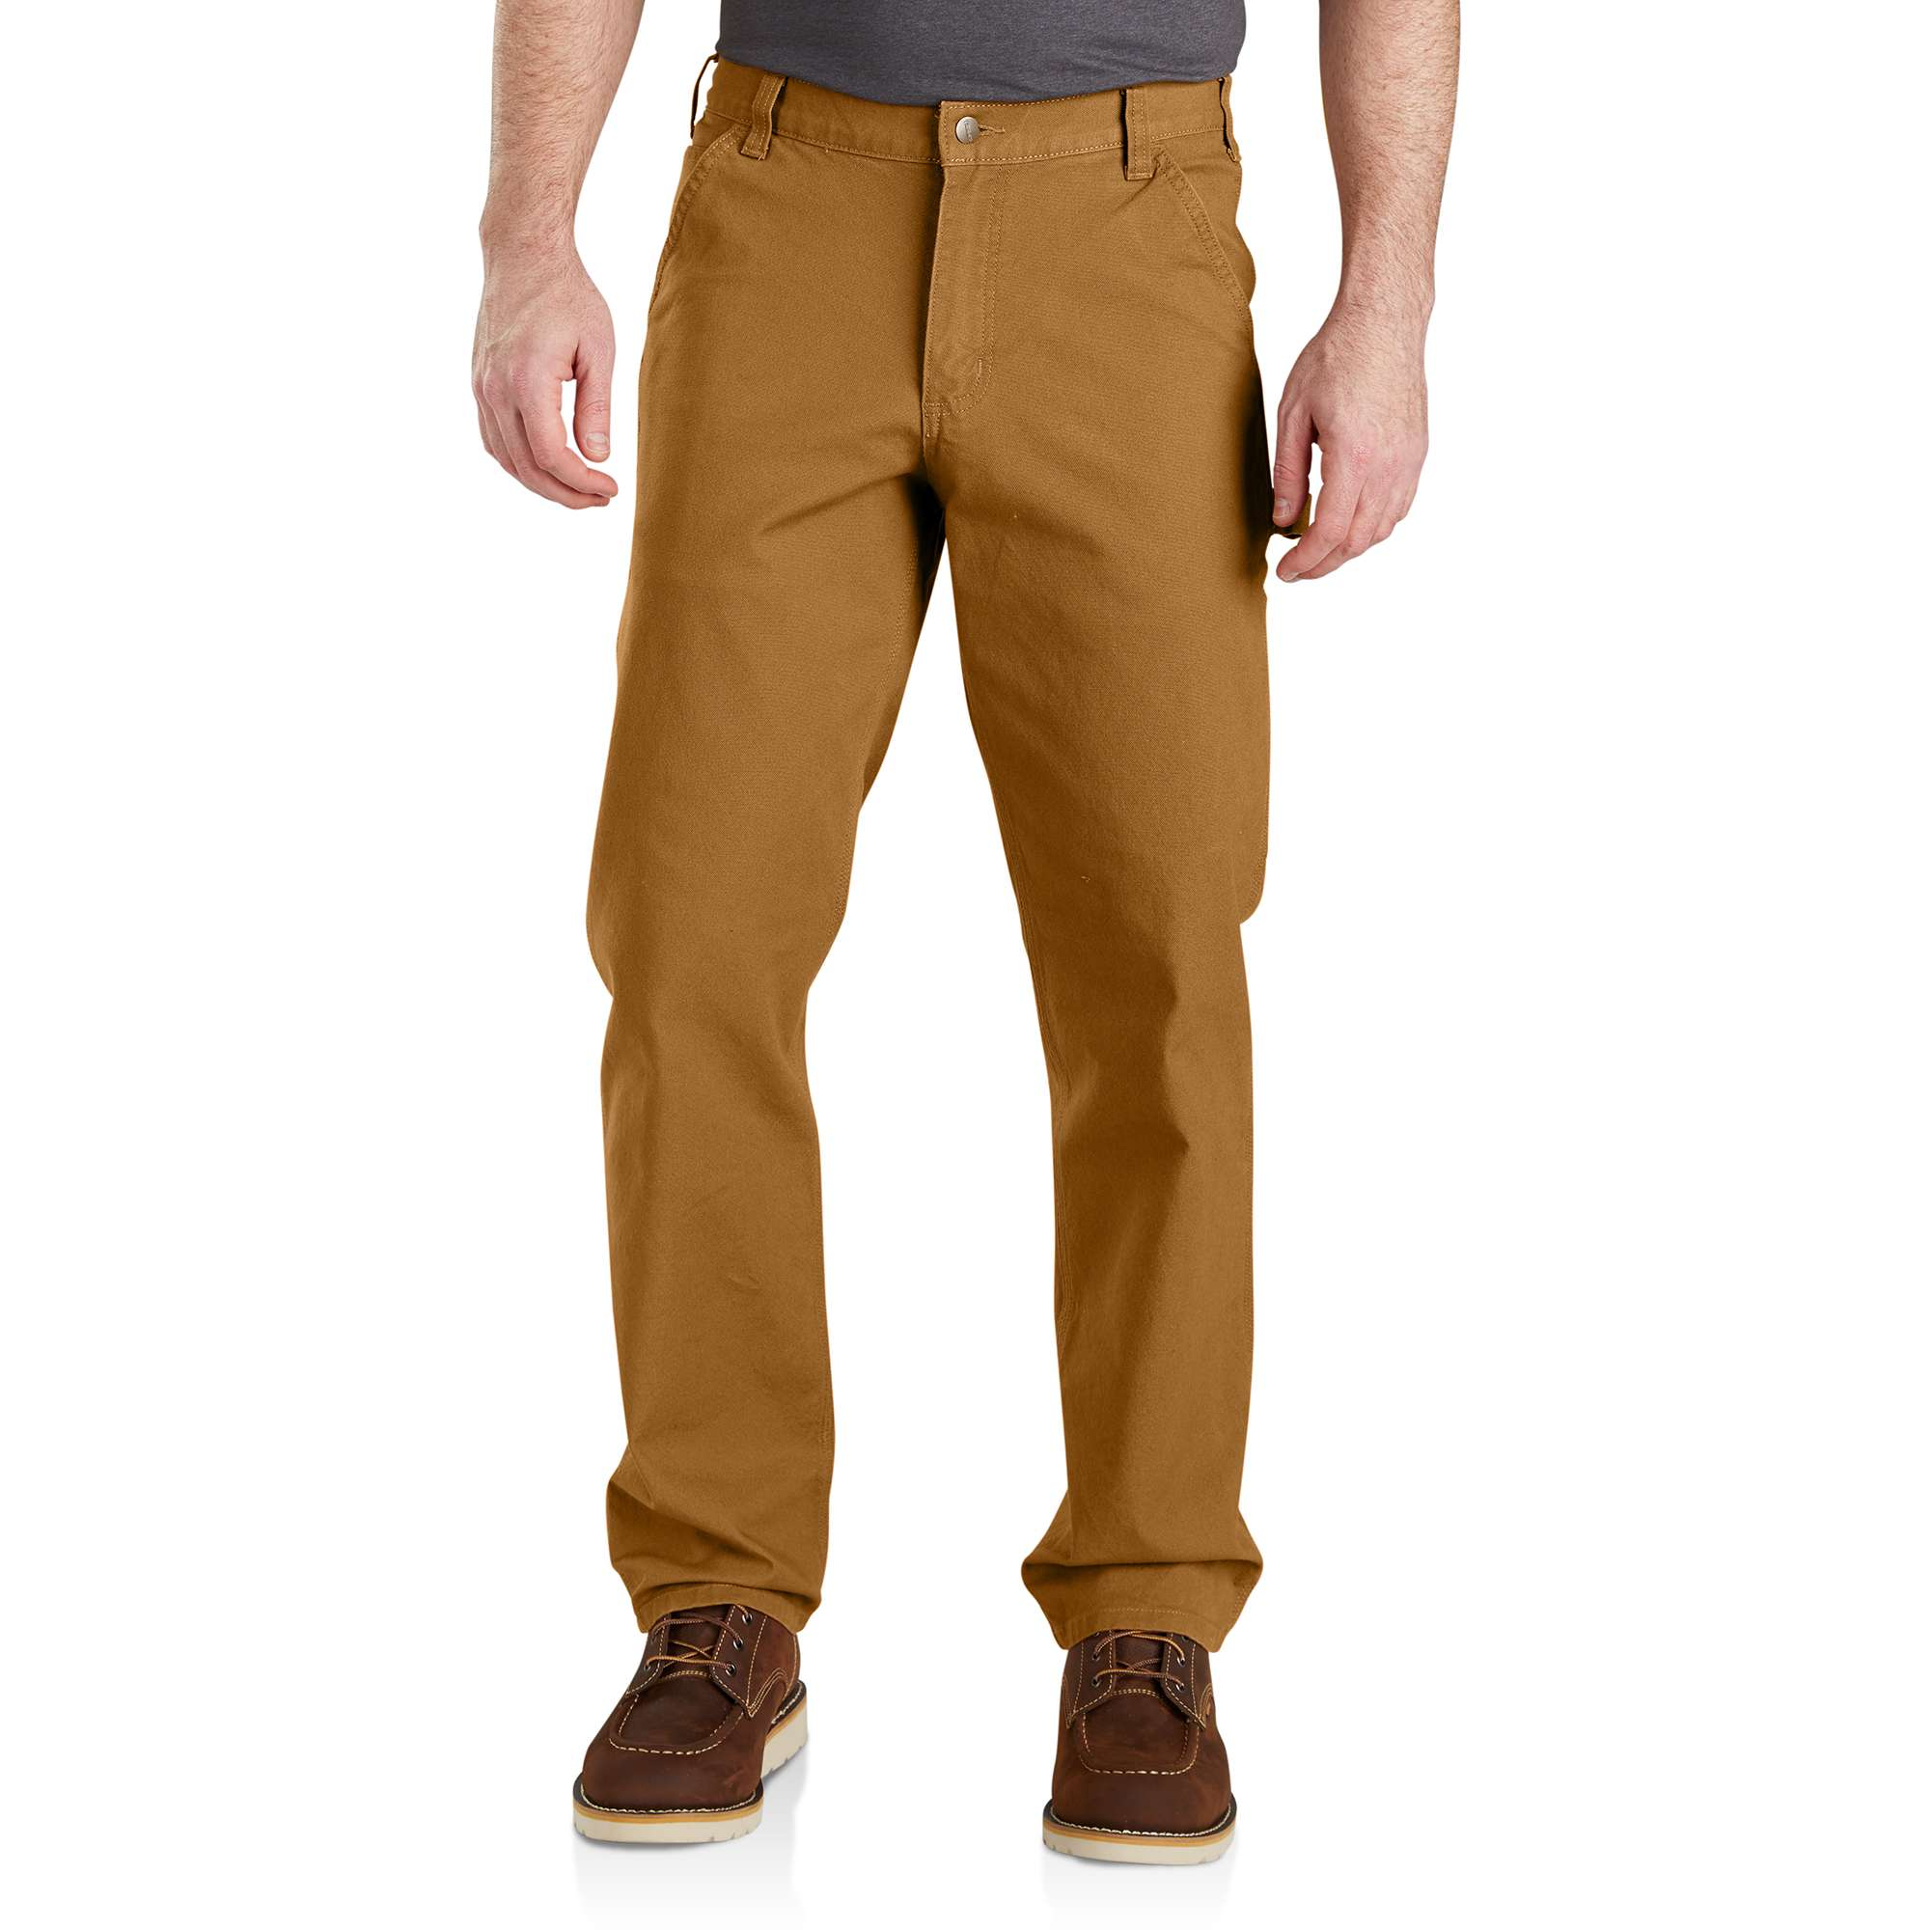 Carhartt Rugged Flex Relaxed Fit Duck Dungaree